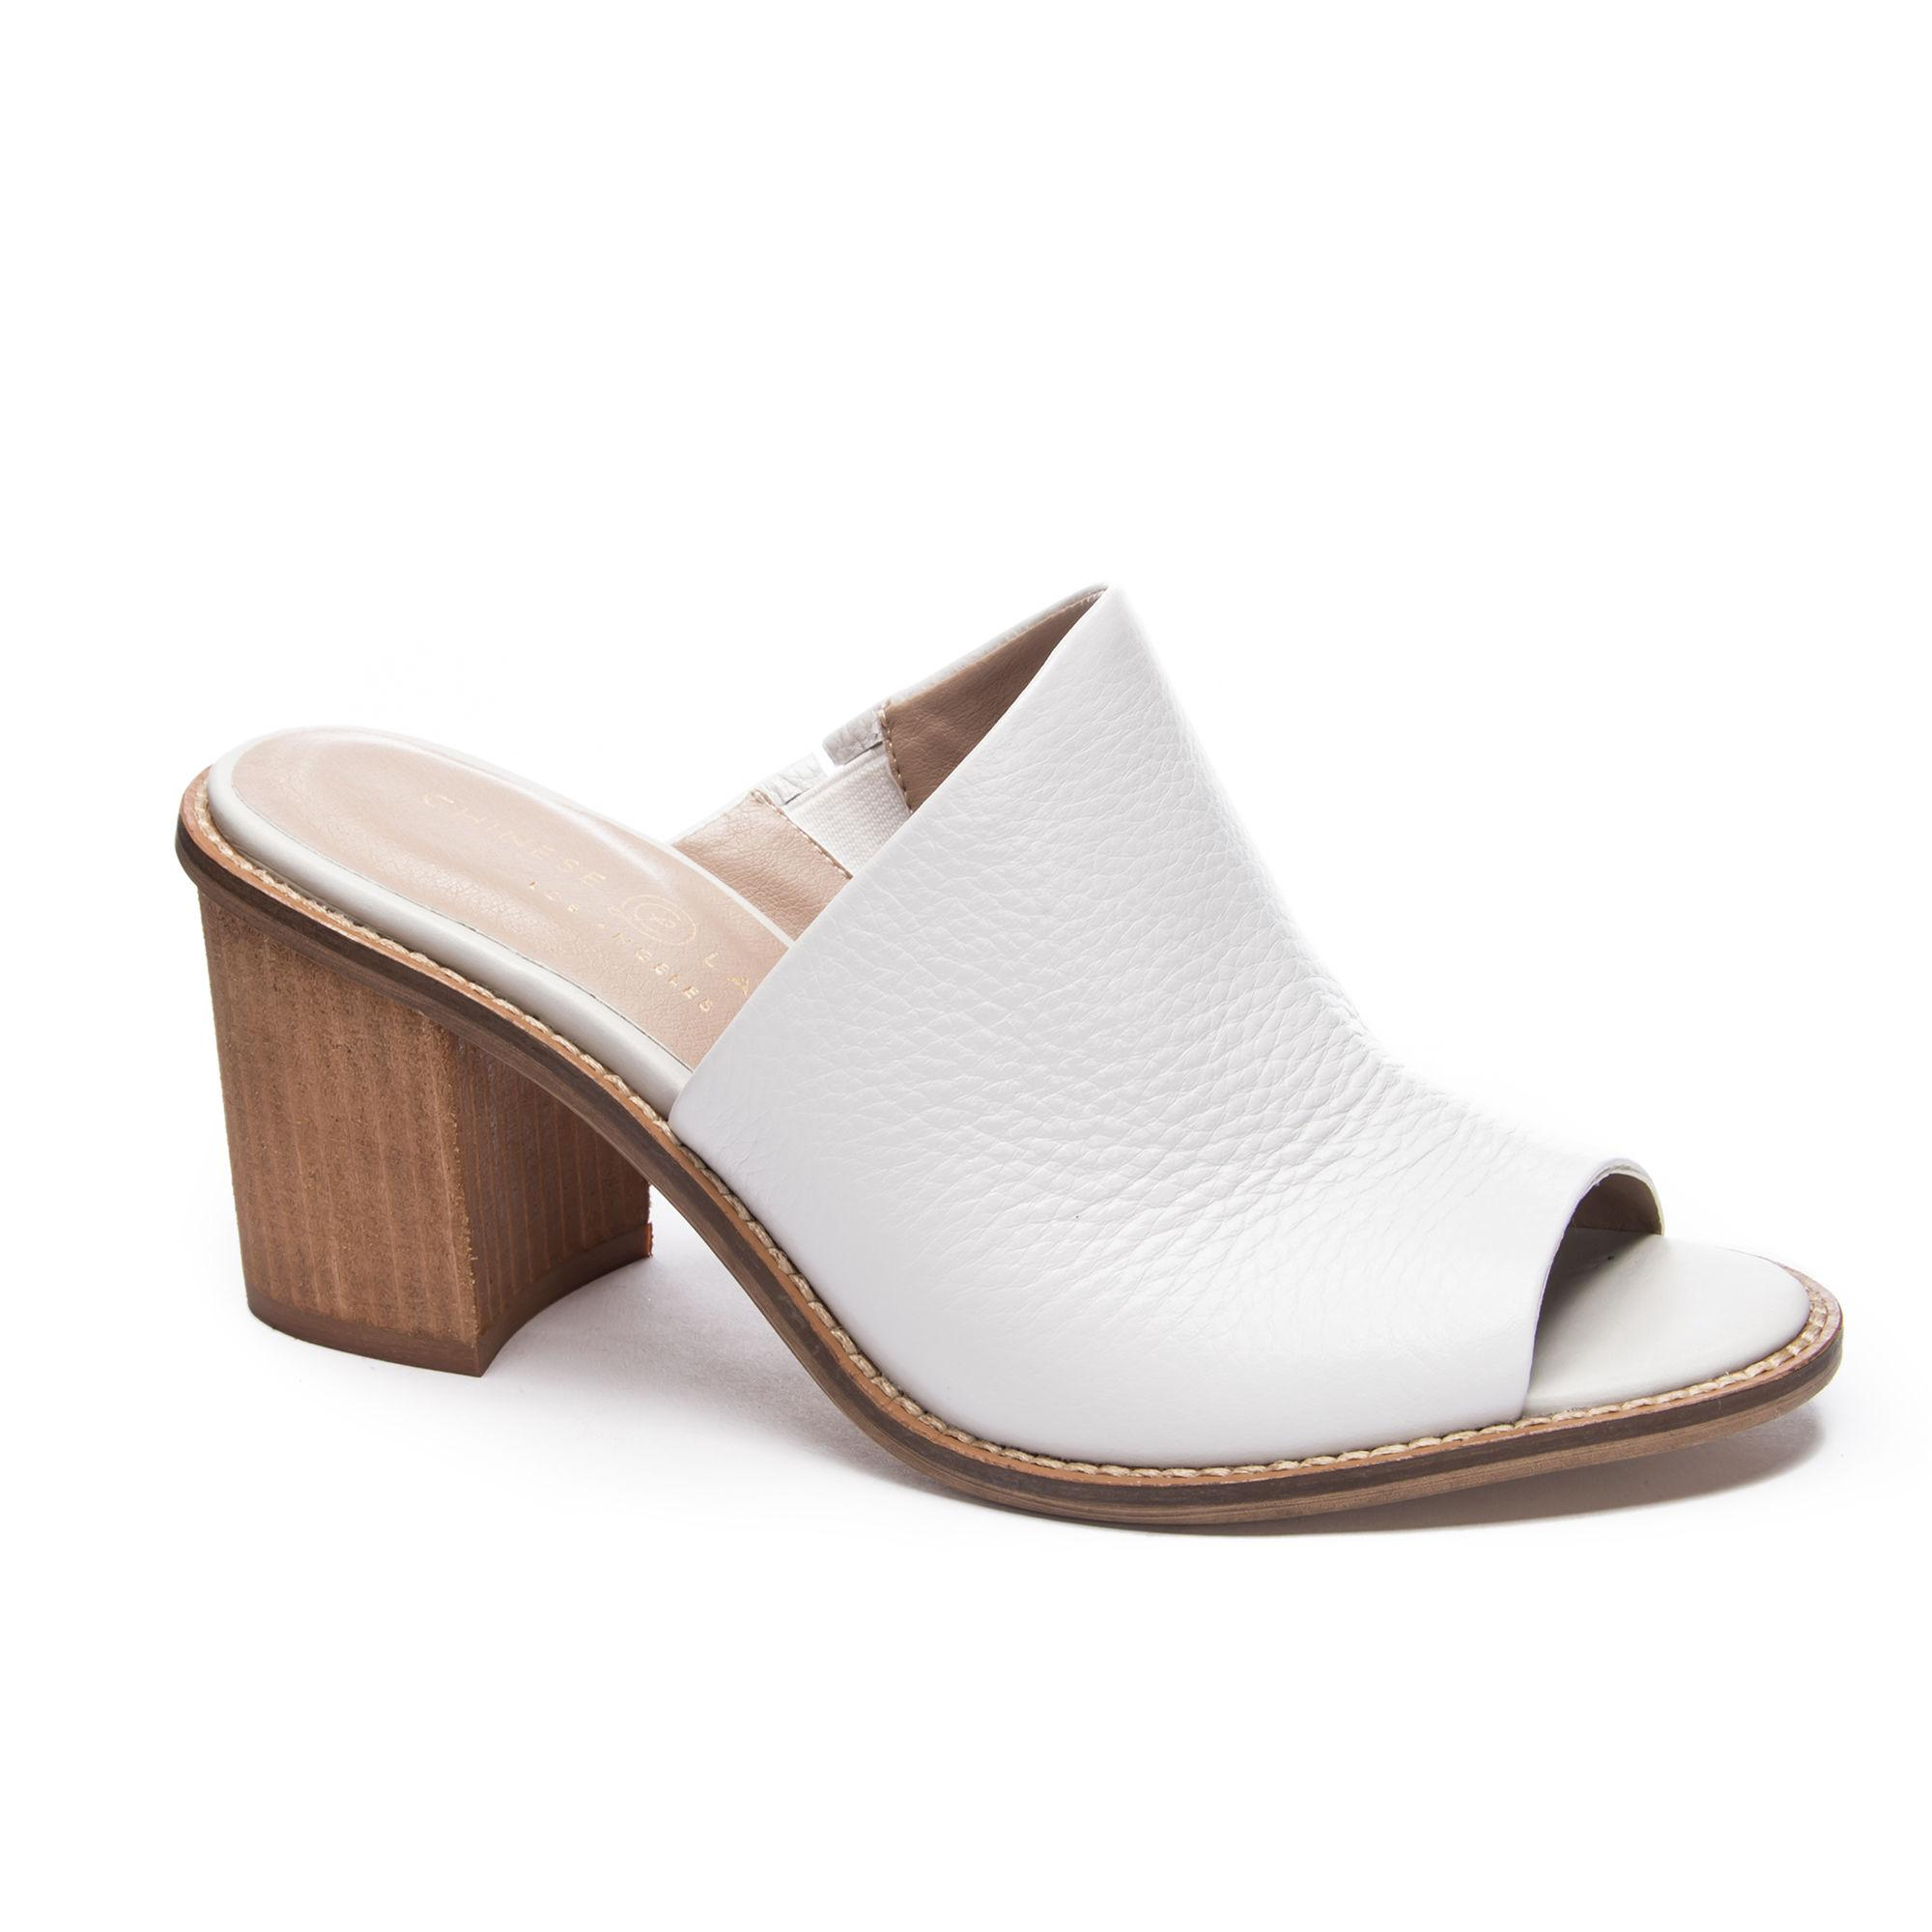 e3387cb2d5888 Lyst - Chinese Laundry Carlin Mule in White